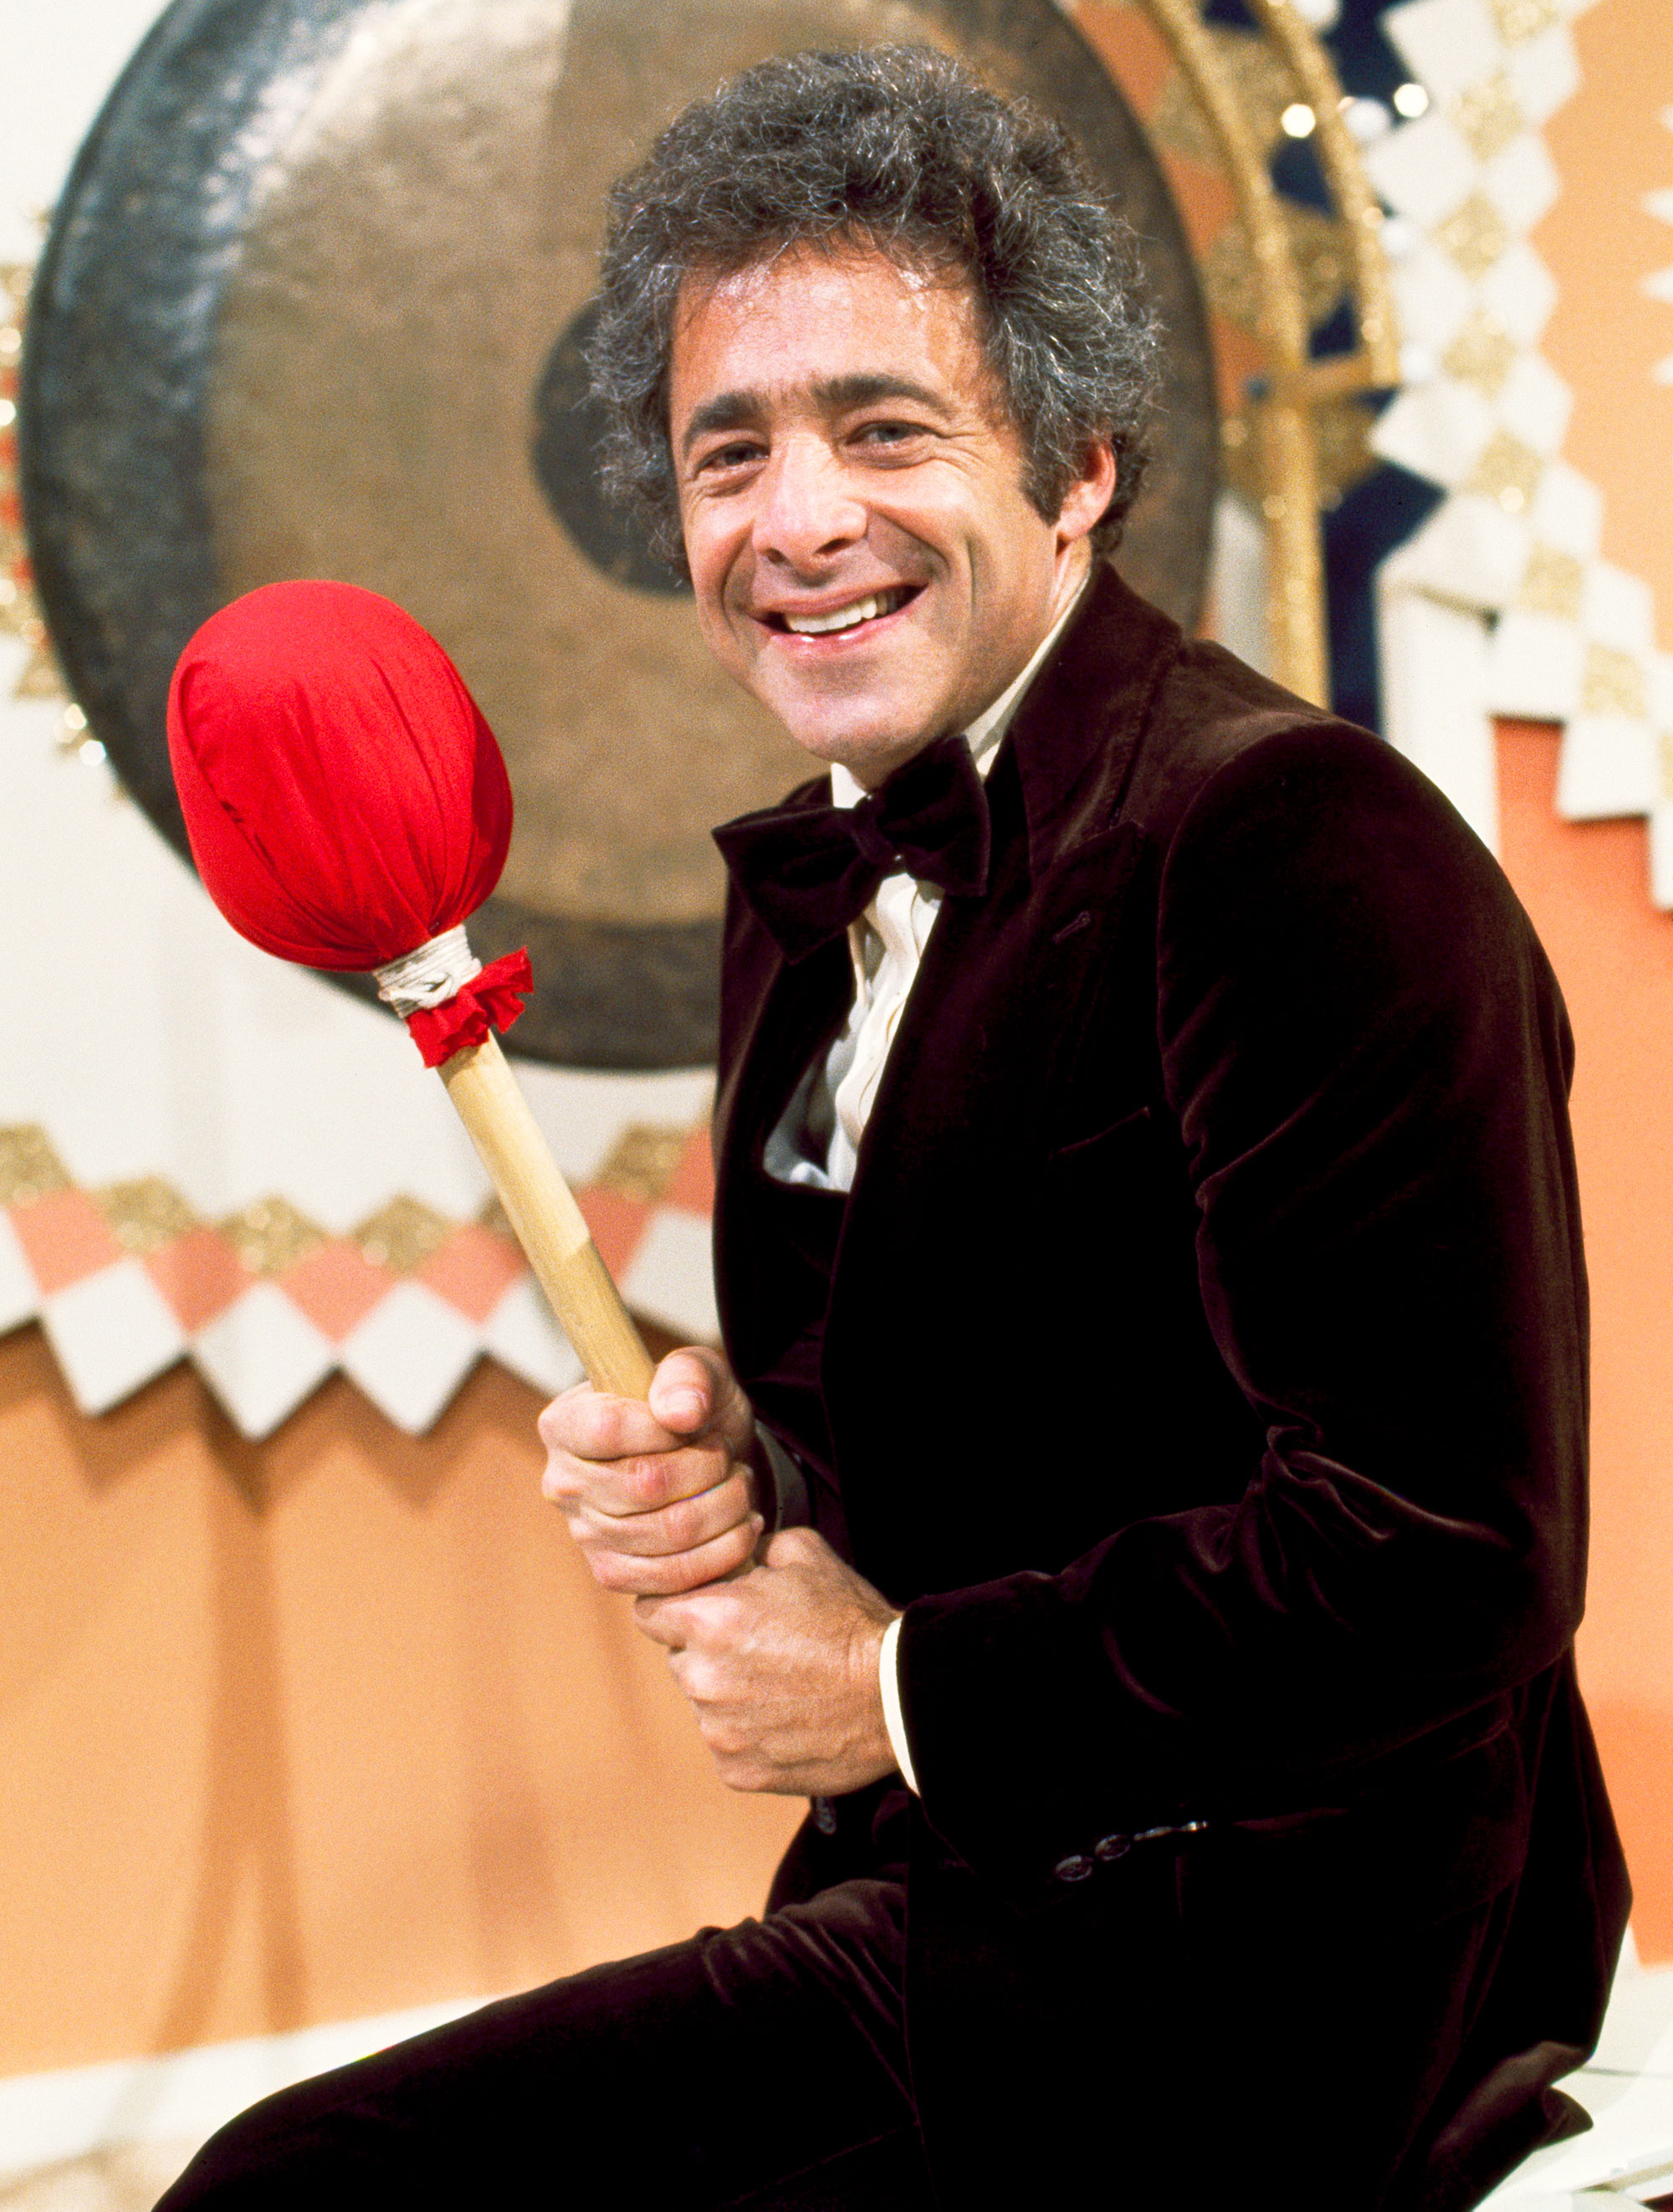 dating game host chuck barris costumes